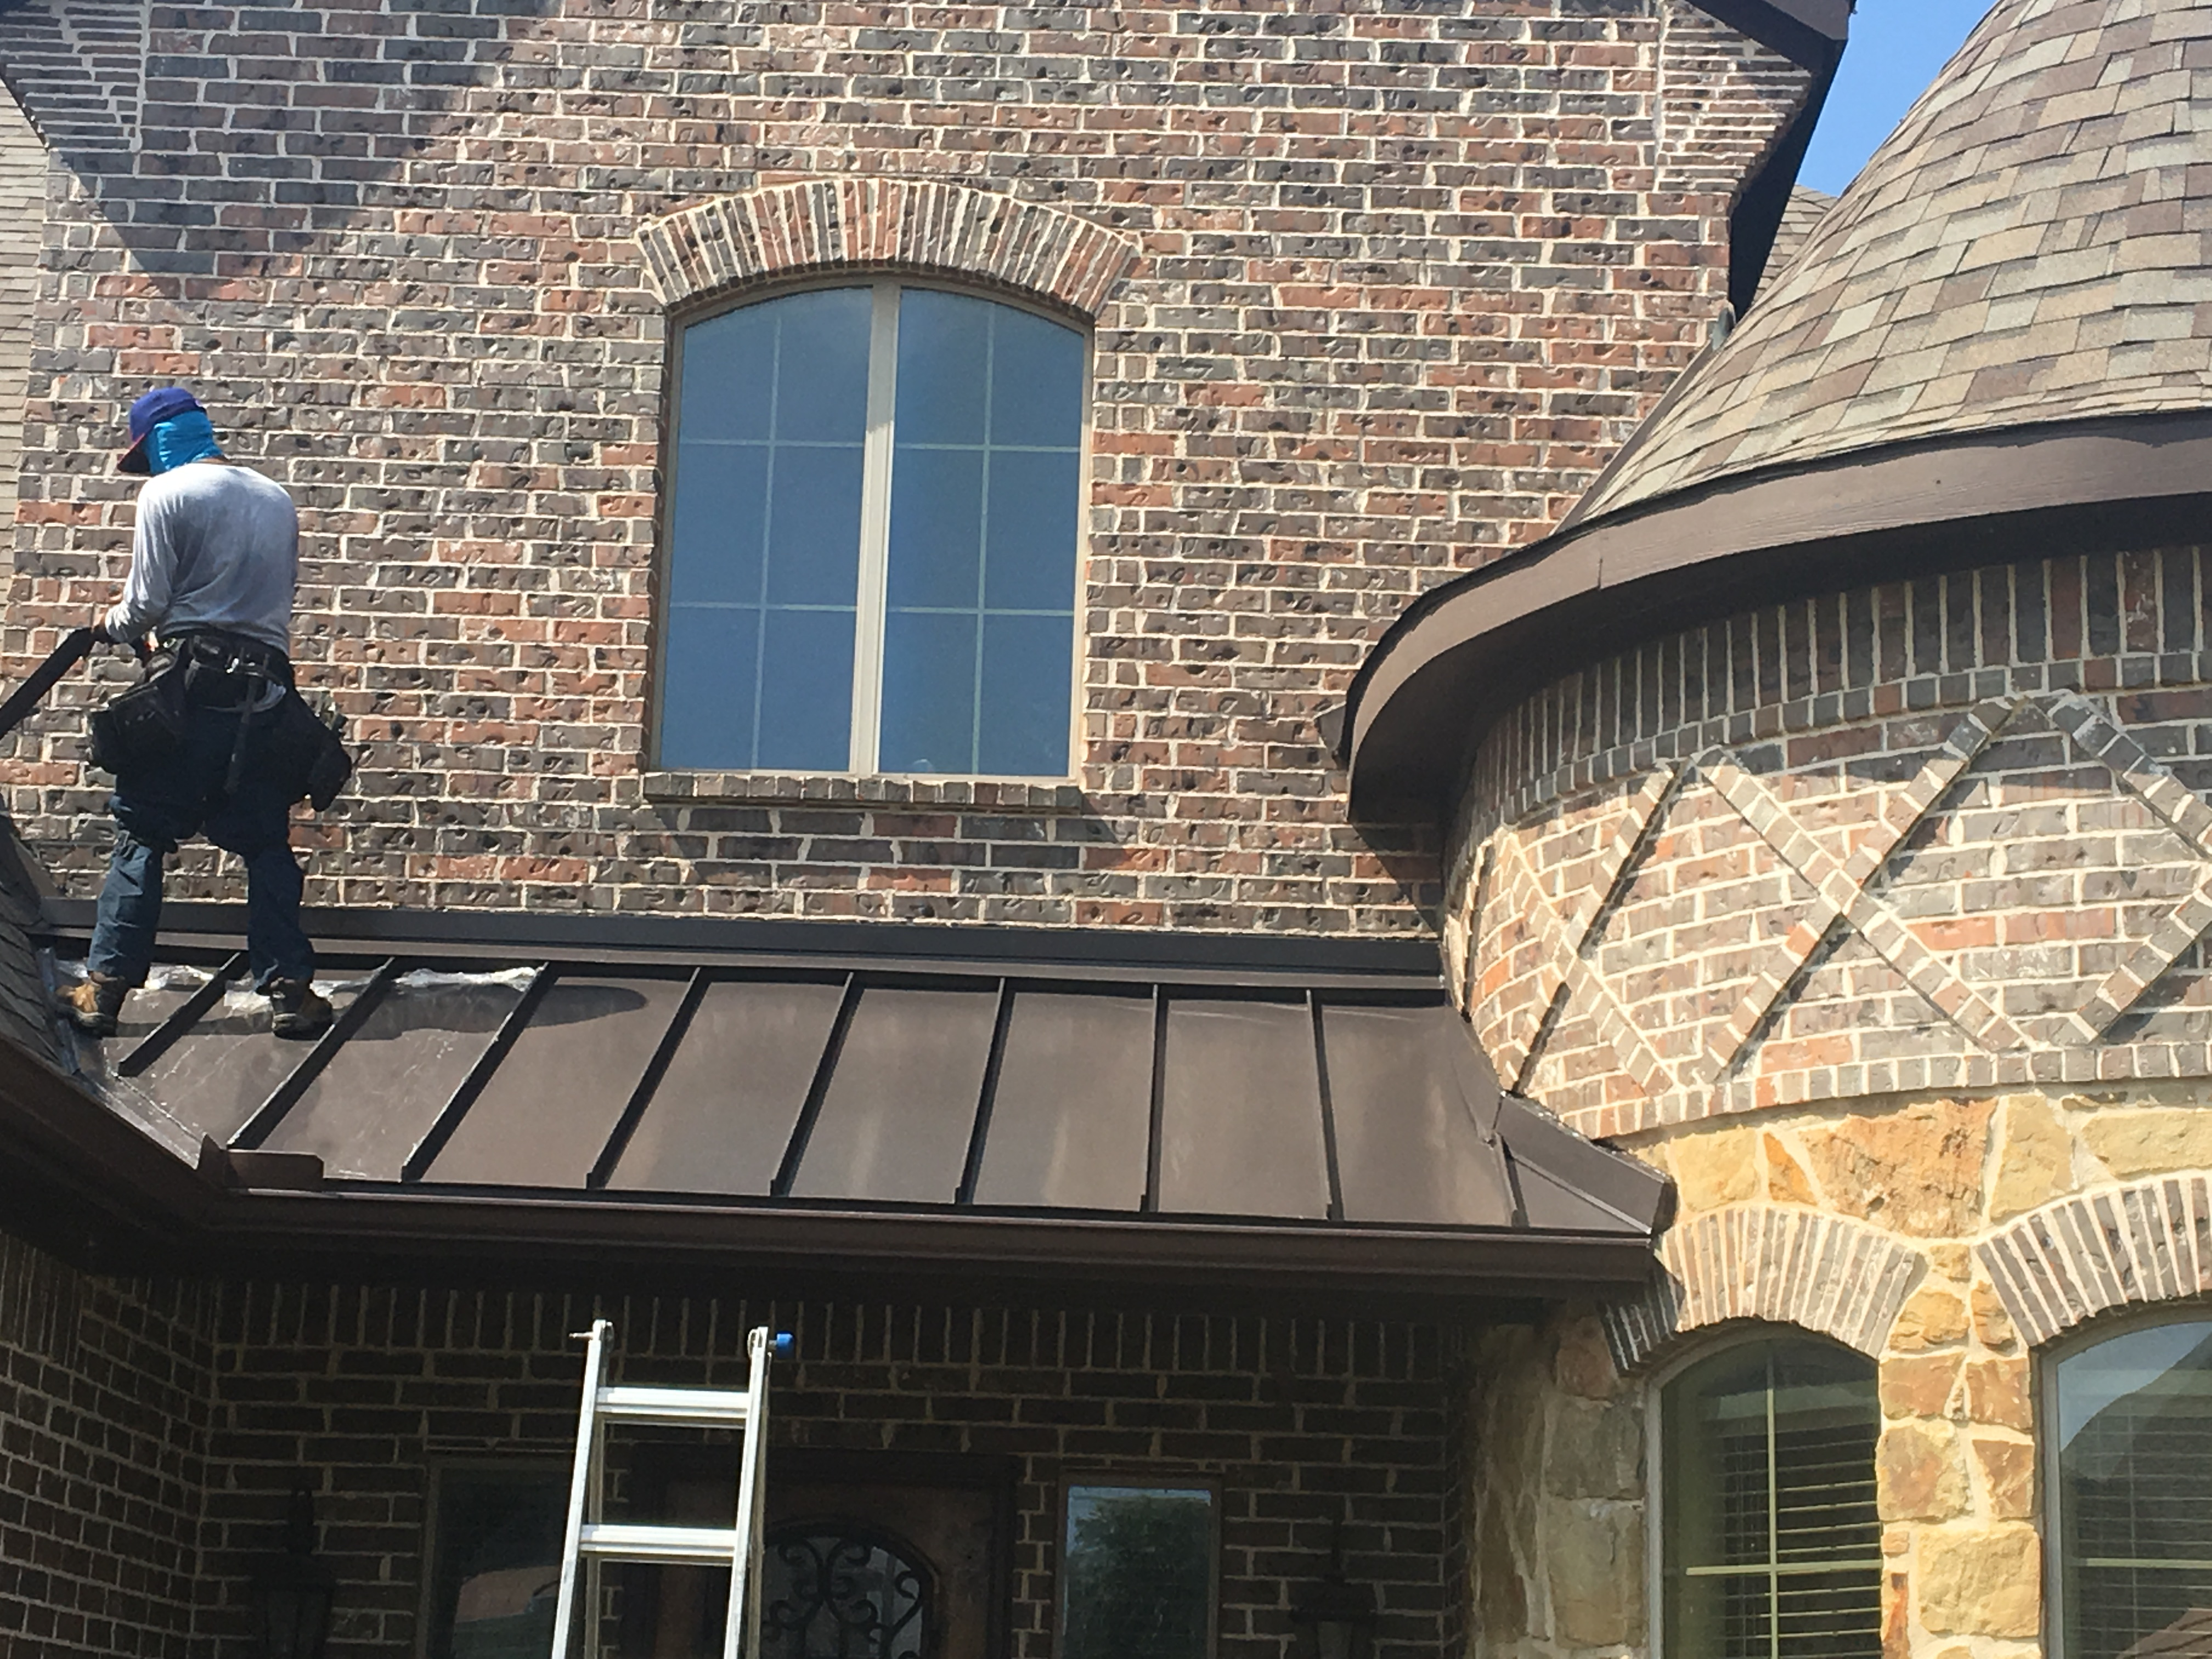 irongate-roofing-roofers-rockwall-north-texas-roofers